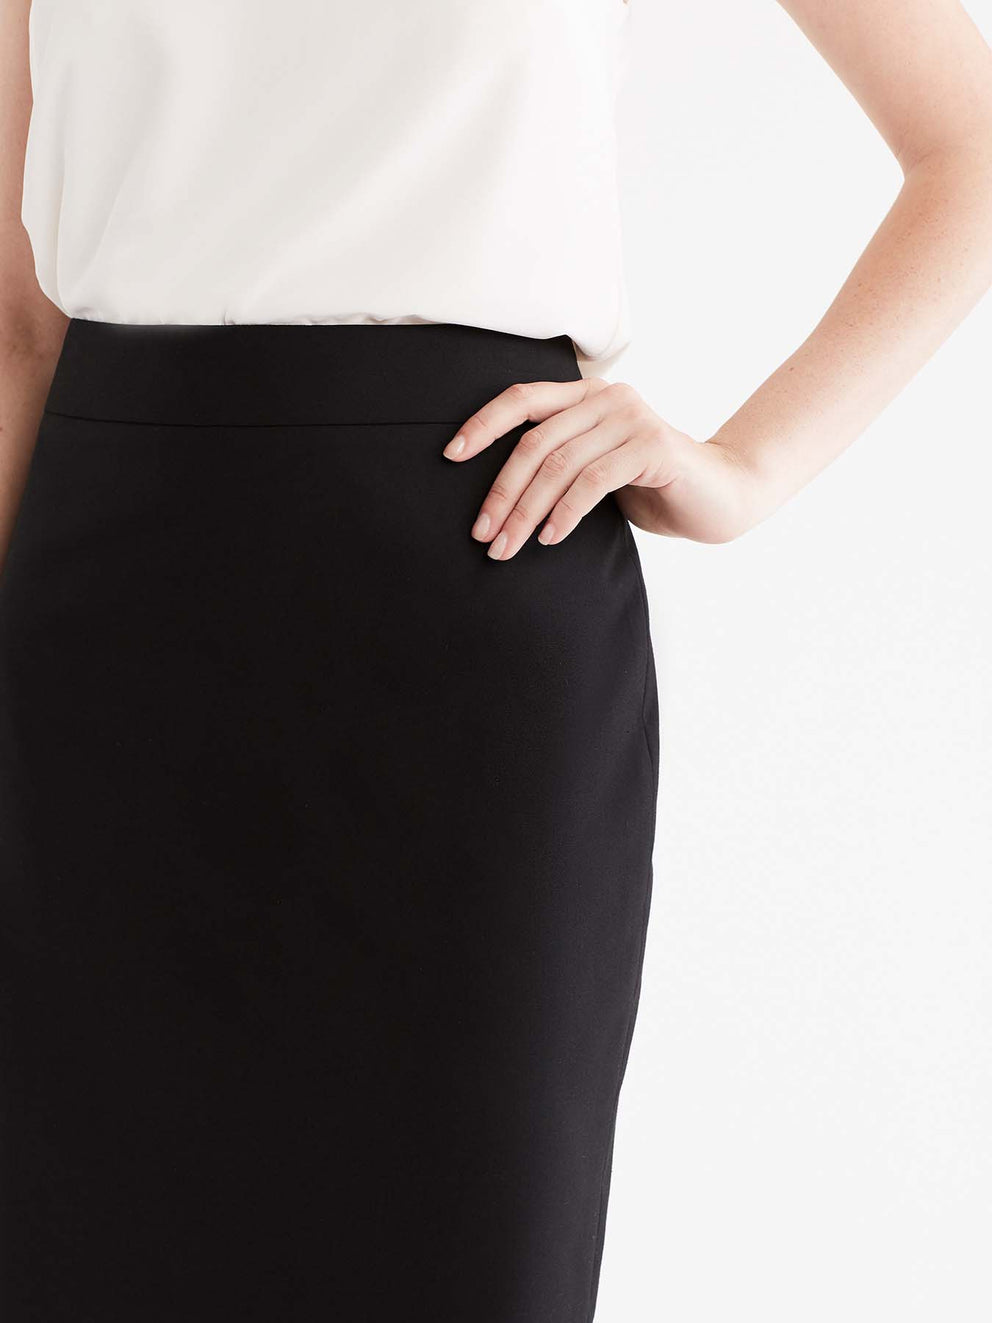 The Jones New York Washable Pencil Skirt in color Black - Image Position 4